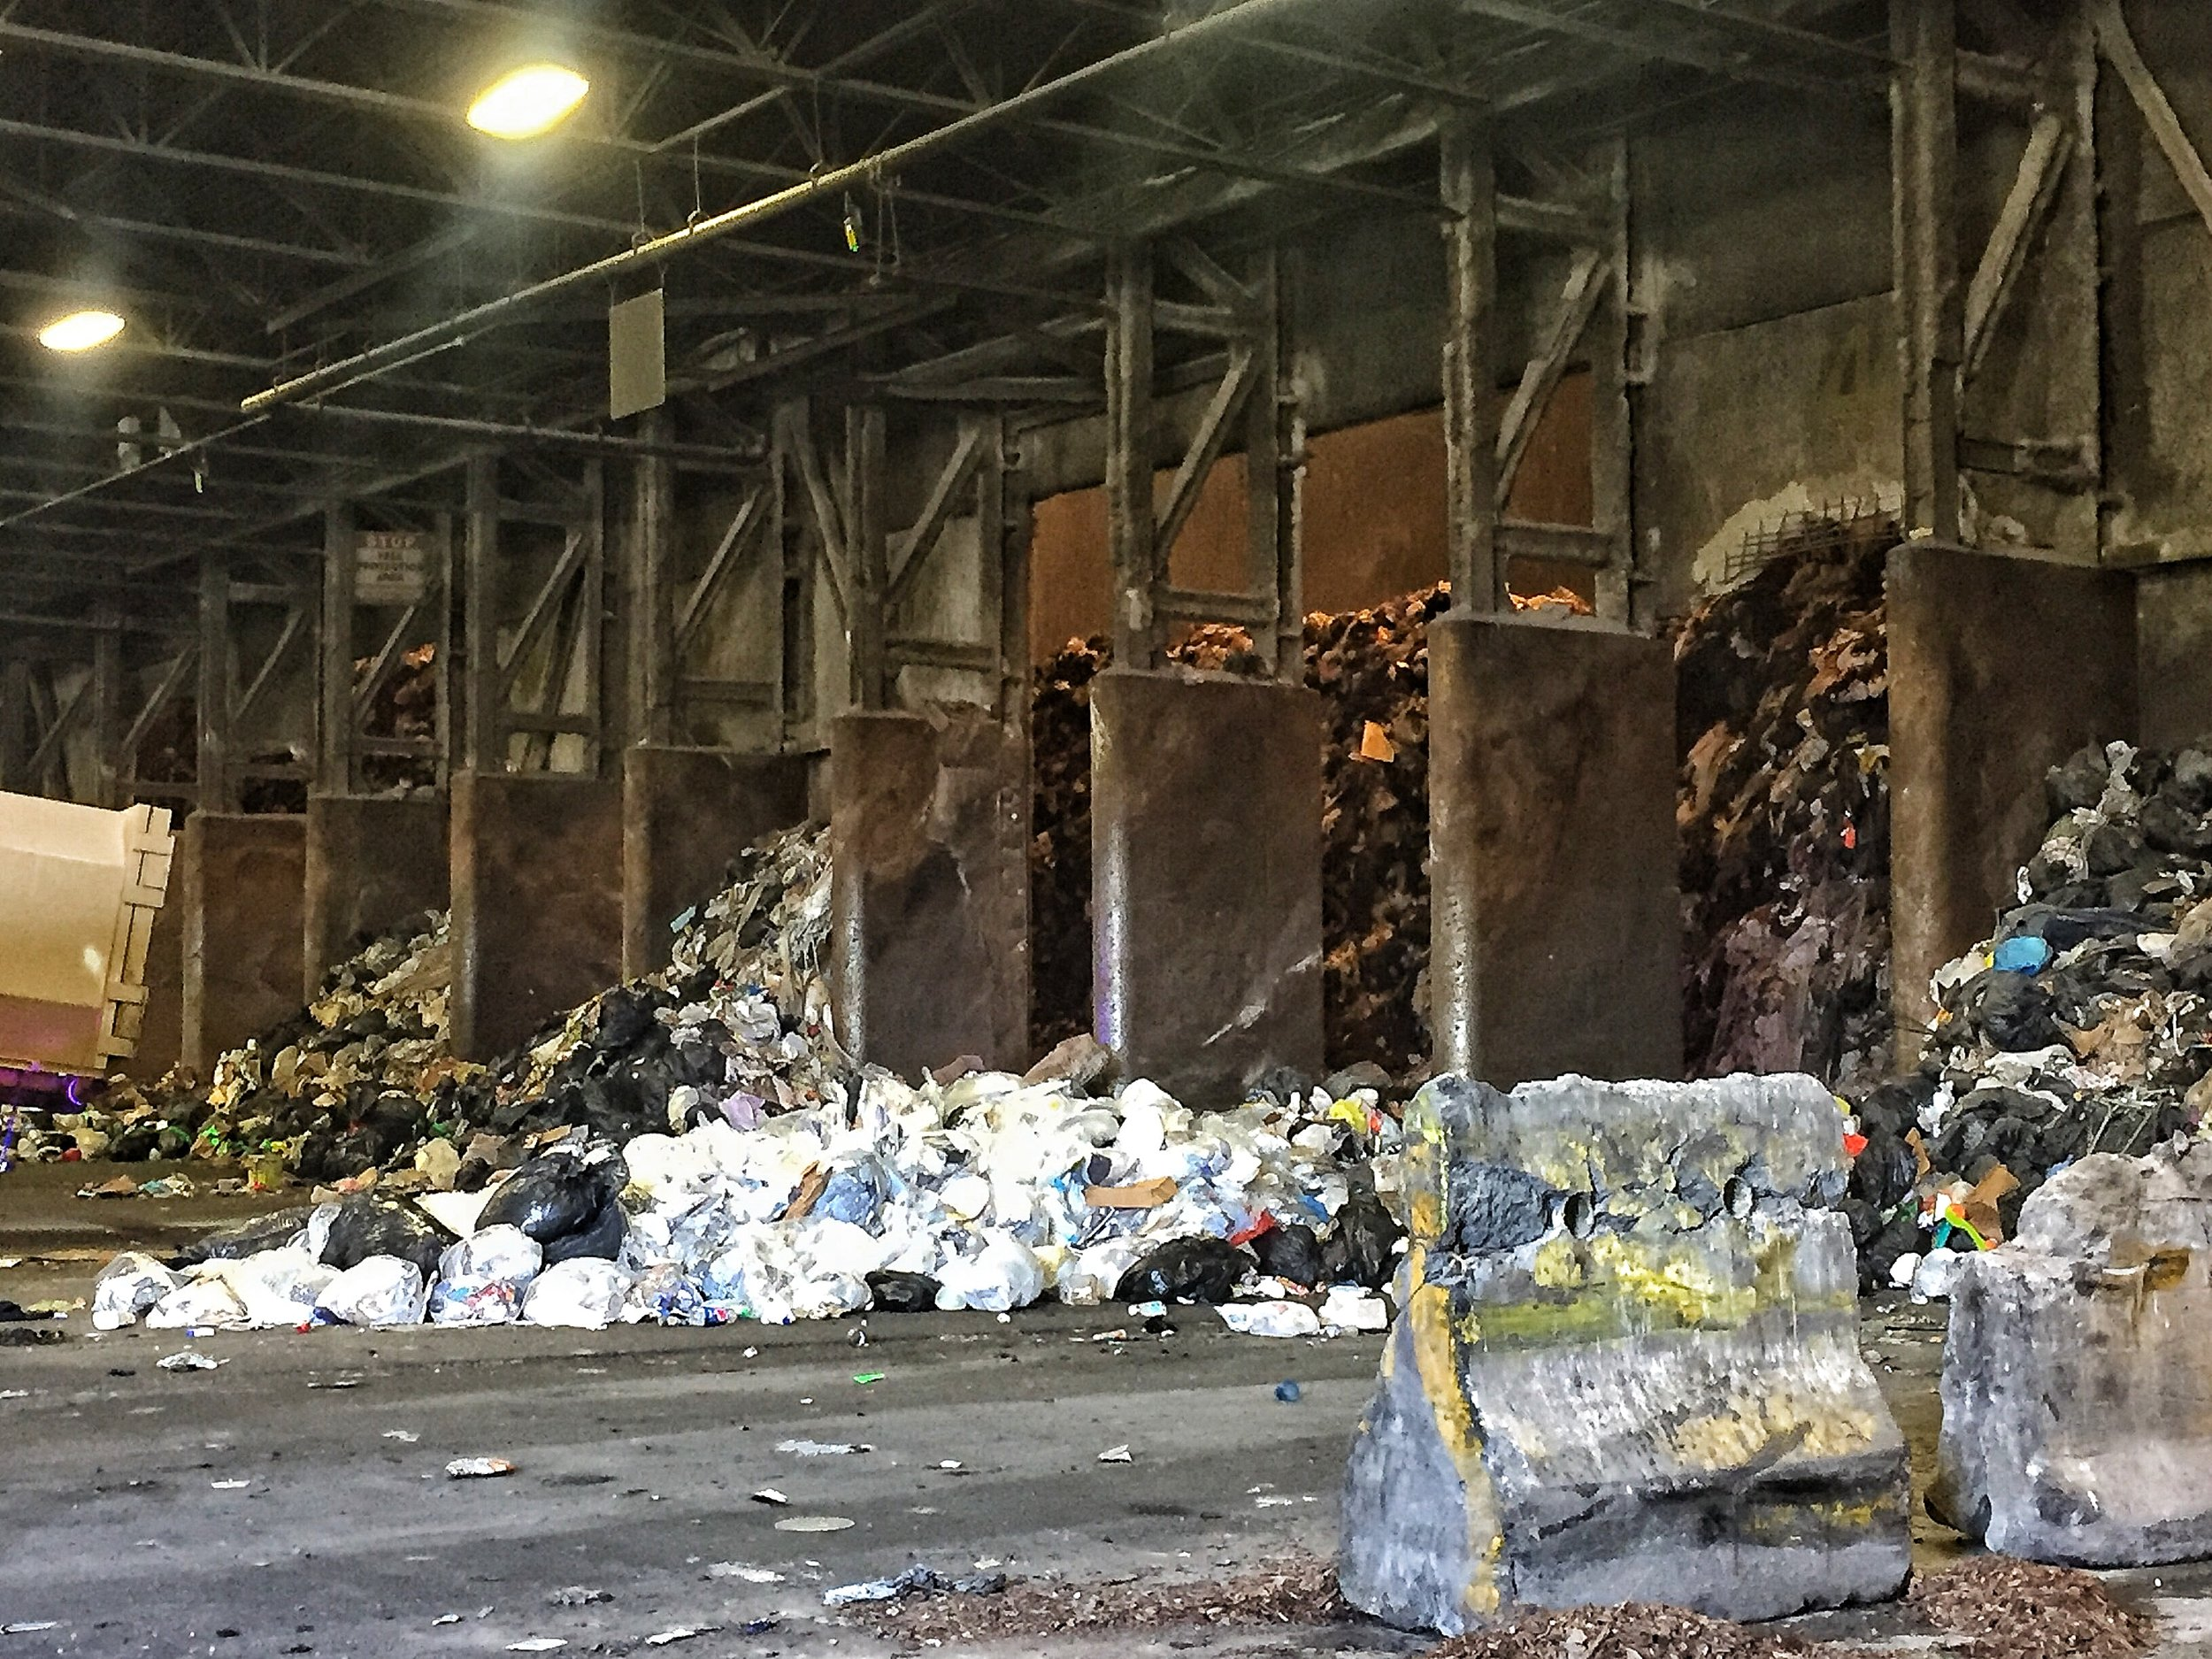 Trash is dumped by the trucks on to the floor. A bulldozer will spread the trash to see if there are any items that shouldn't be there such as large appliances or furniture. Then it is pushed to the trough below.